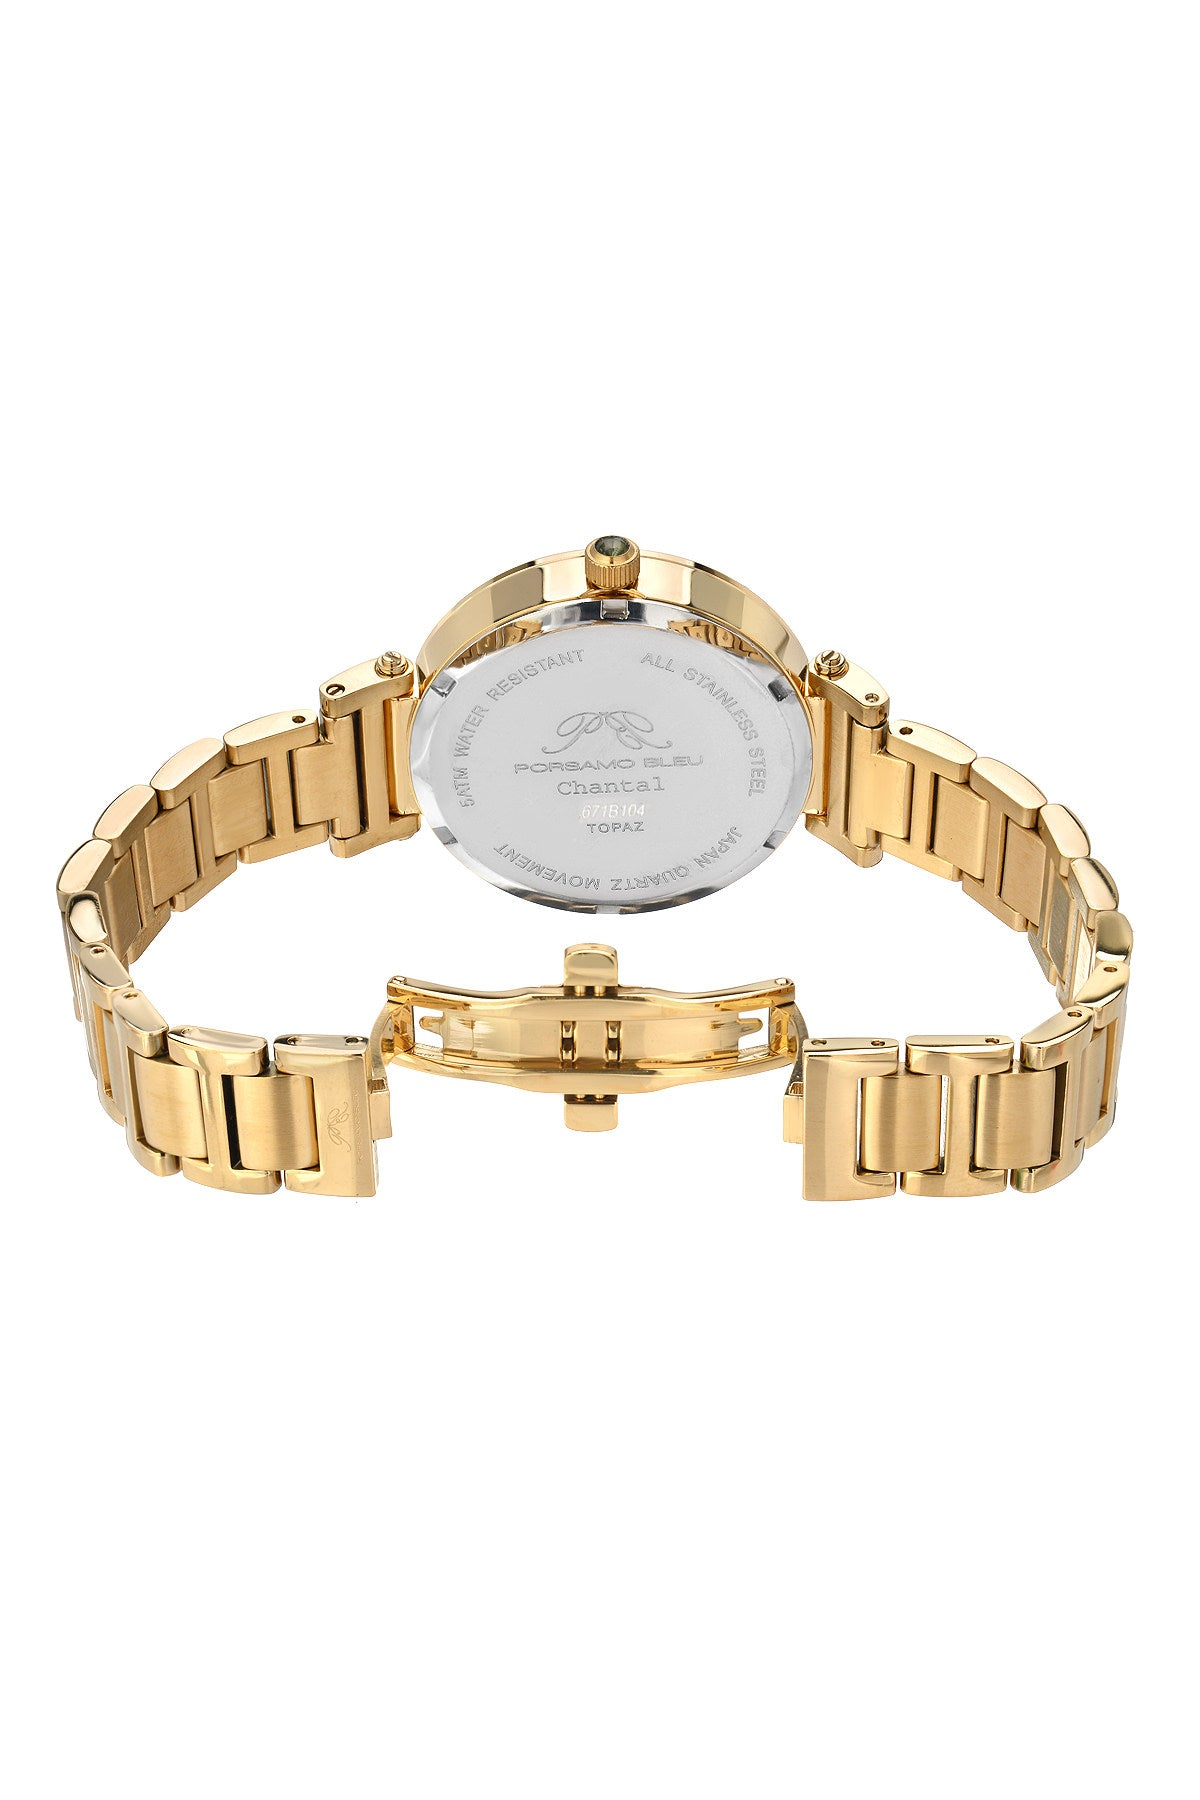 Porsamo Bleu Chantal luxury topaz women's stainless steel watch, gold, white 671BCHS